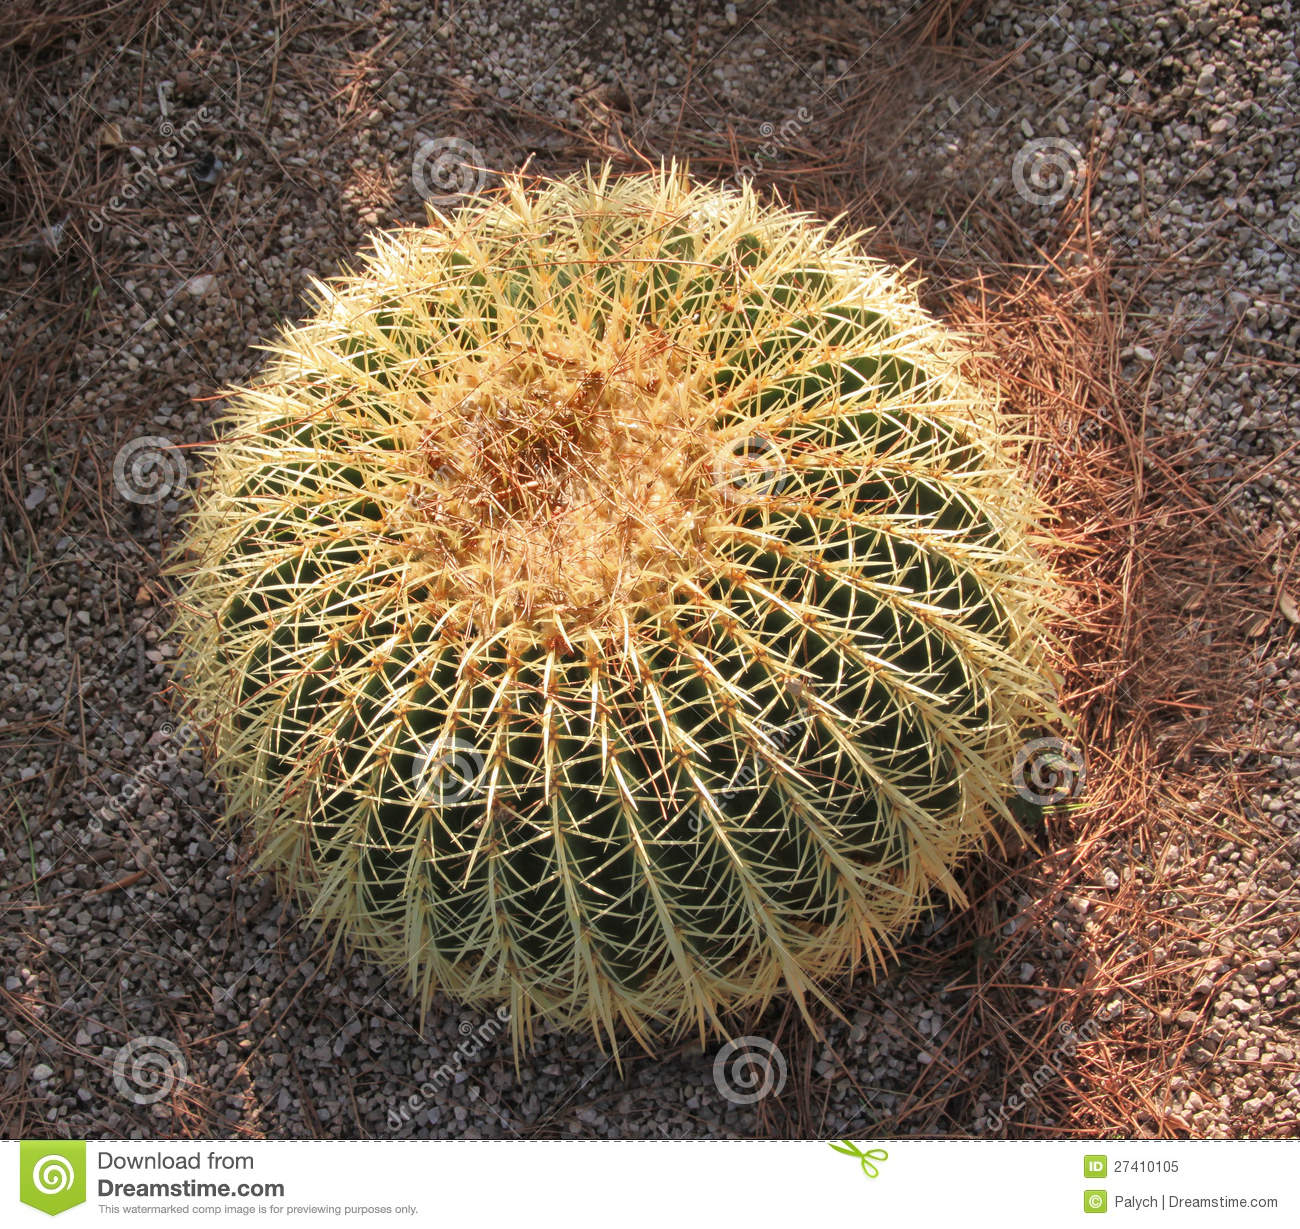 The Golden Ball Cactus Royalty Free Stock Photo.